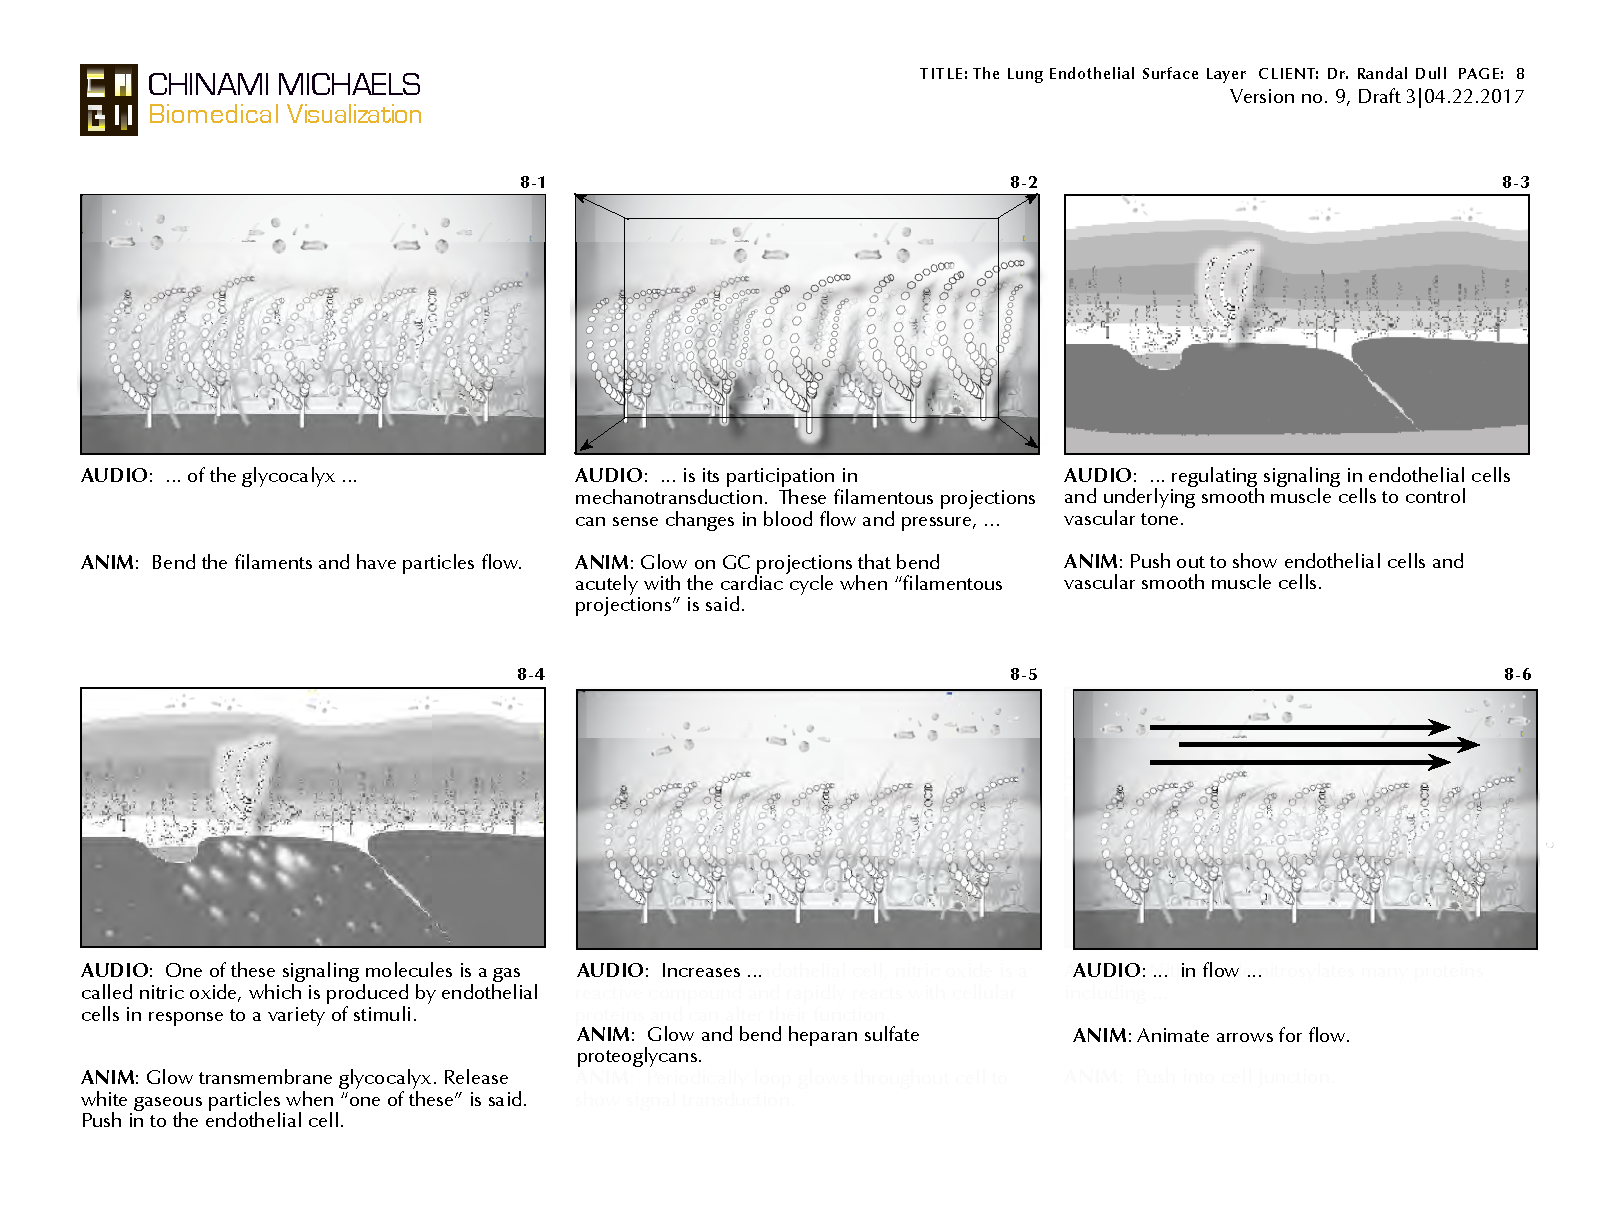 1704_Storyboard_04242017_InteractivePDF_Storyboard_Michaels_Page_08.png